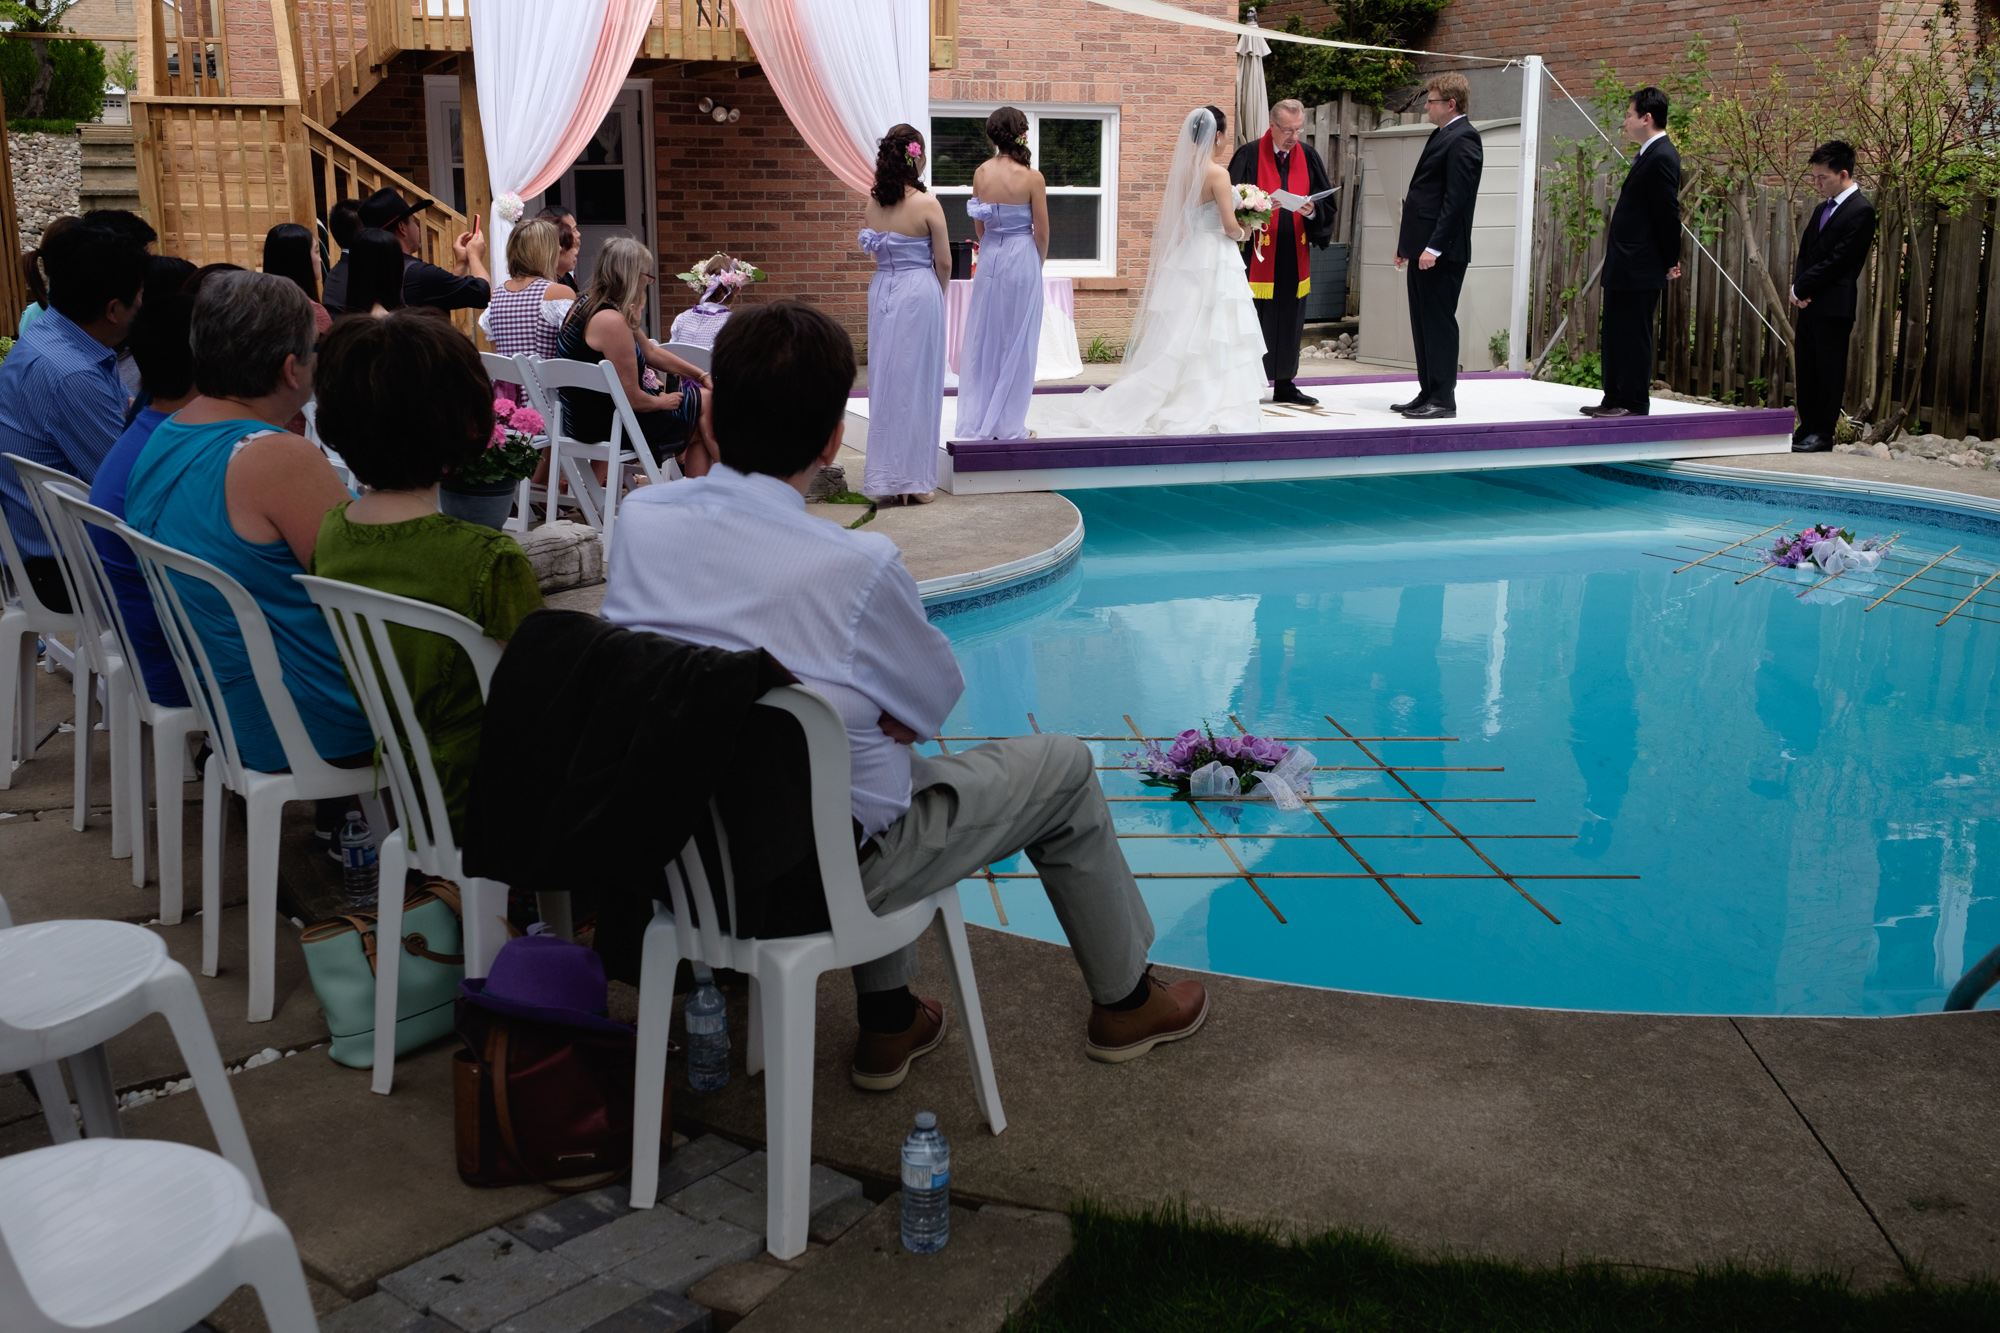 A photograph of Jing + Rene's outdoor wedding ceremony on a platform over their parents backyard pool.